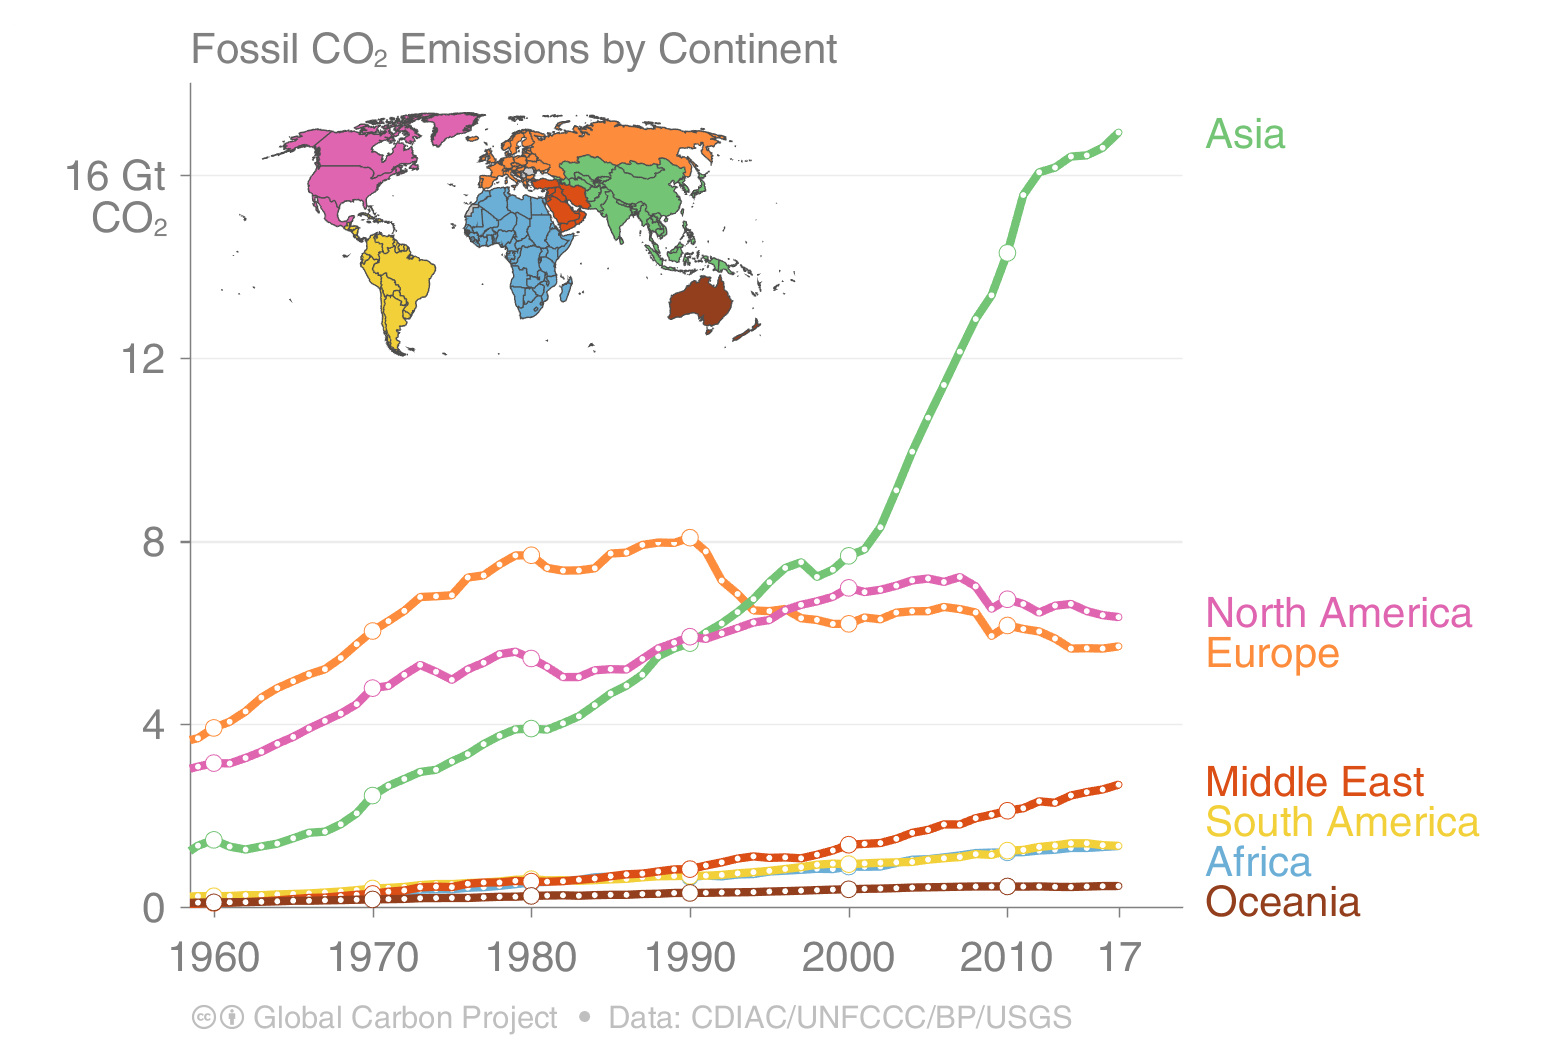 Fossil CO2 emissions by continent